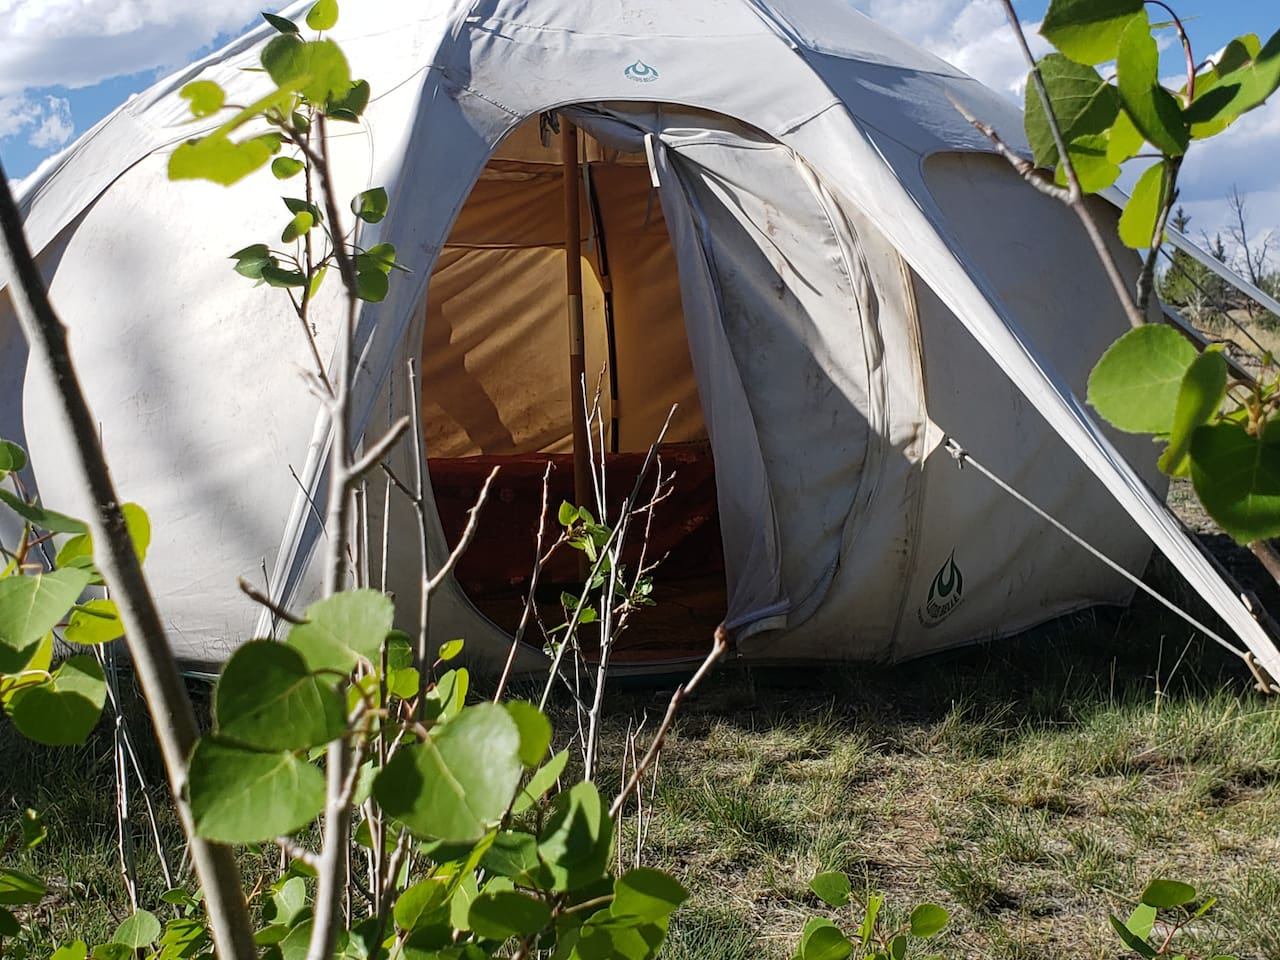 Our largest yurt at 11-Mile catching the evening rays of sunshine.